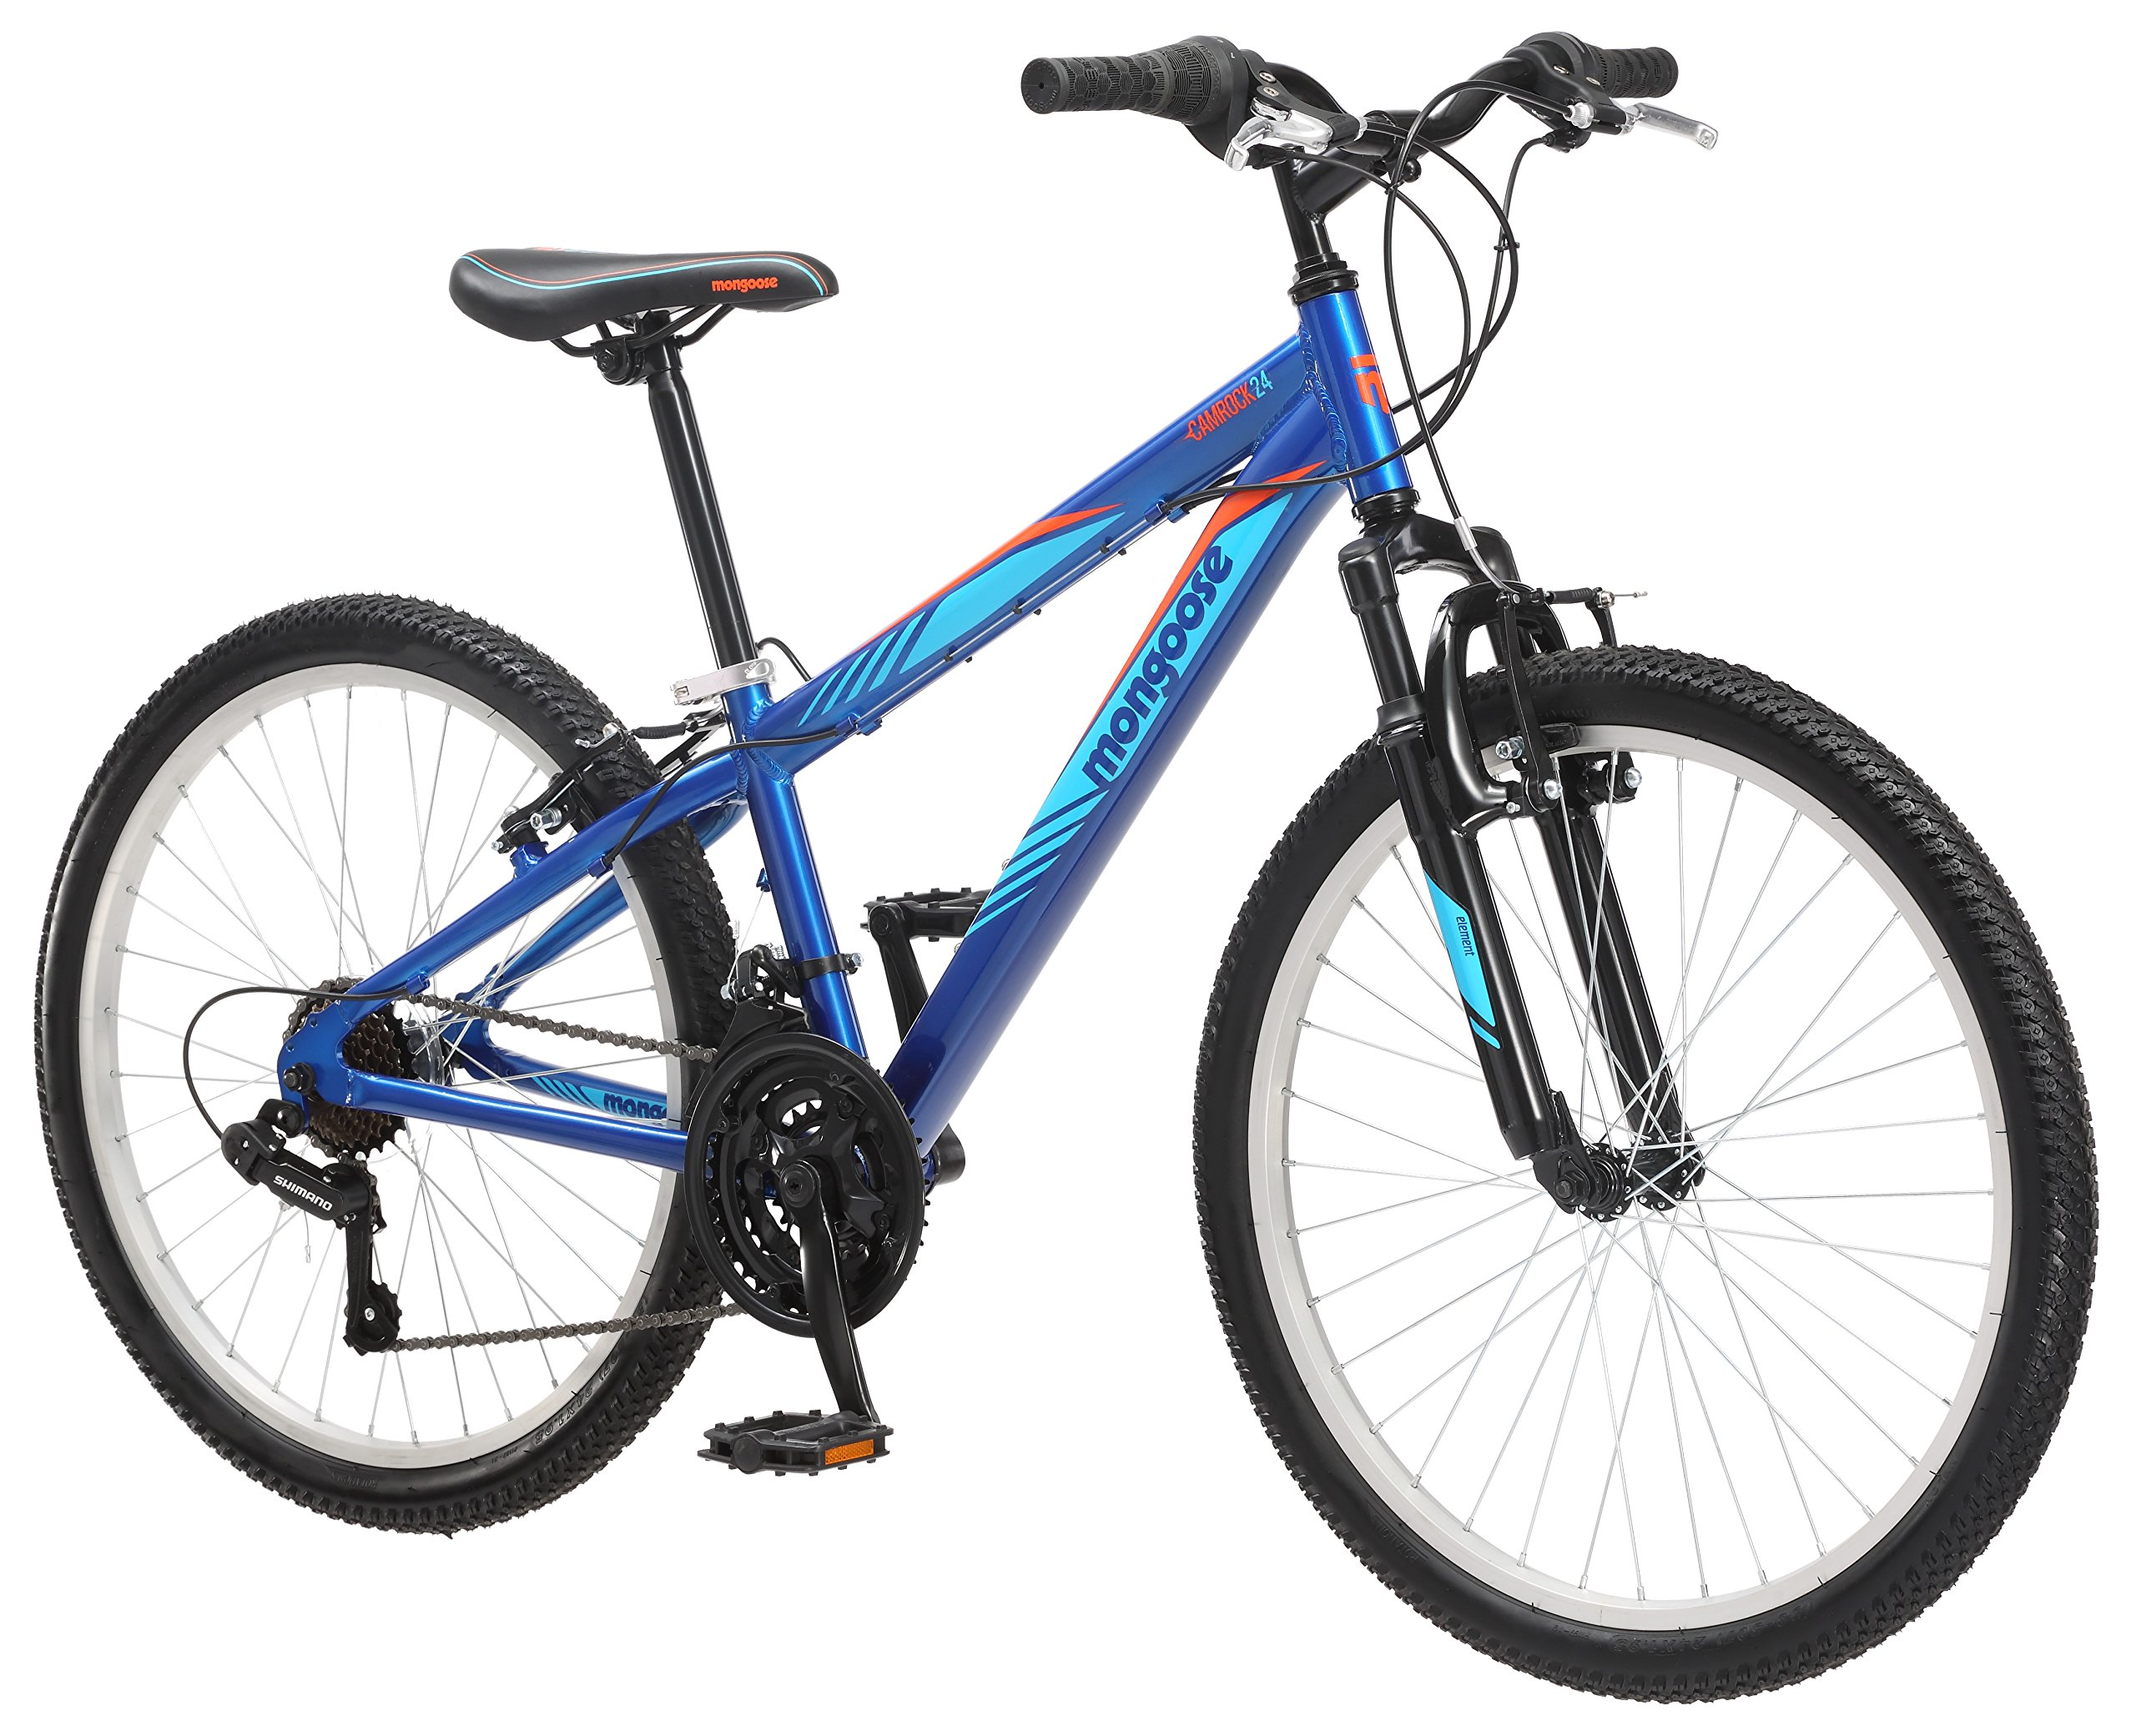 Mongoose Camrock 24'' Wheel Mountain Bicycle, Blue, One Size by Mongoose (Image #3)